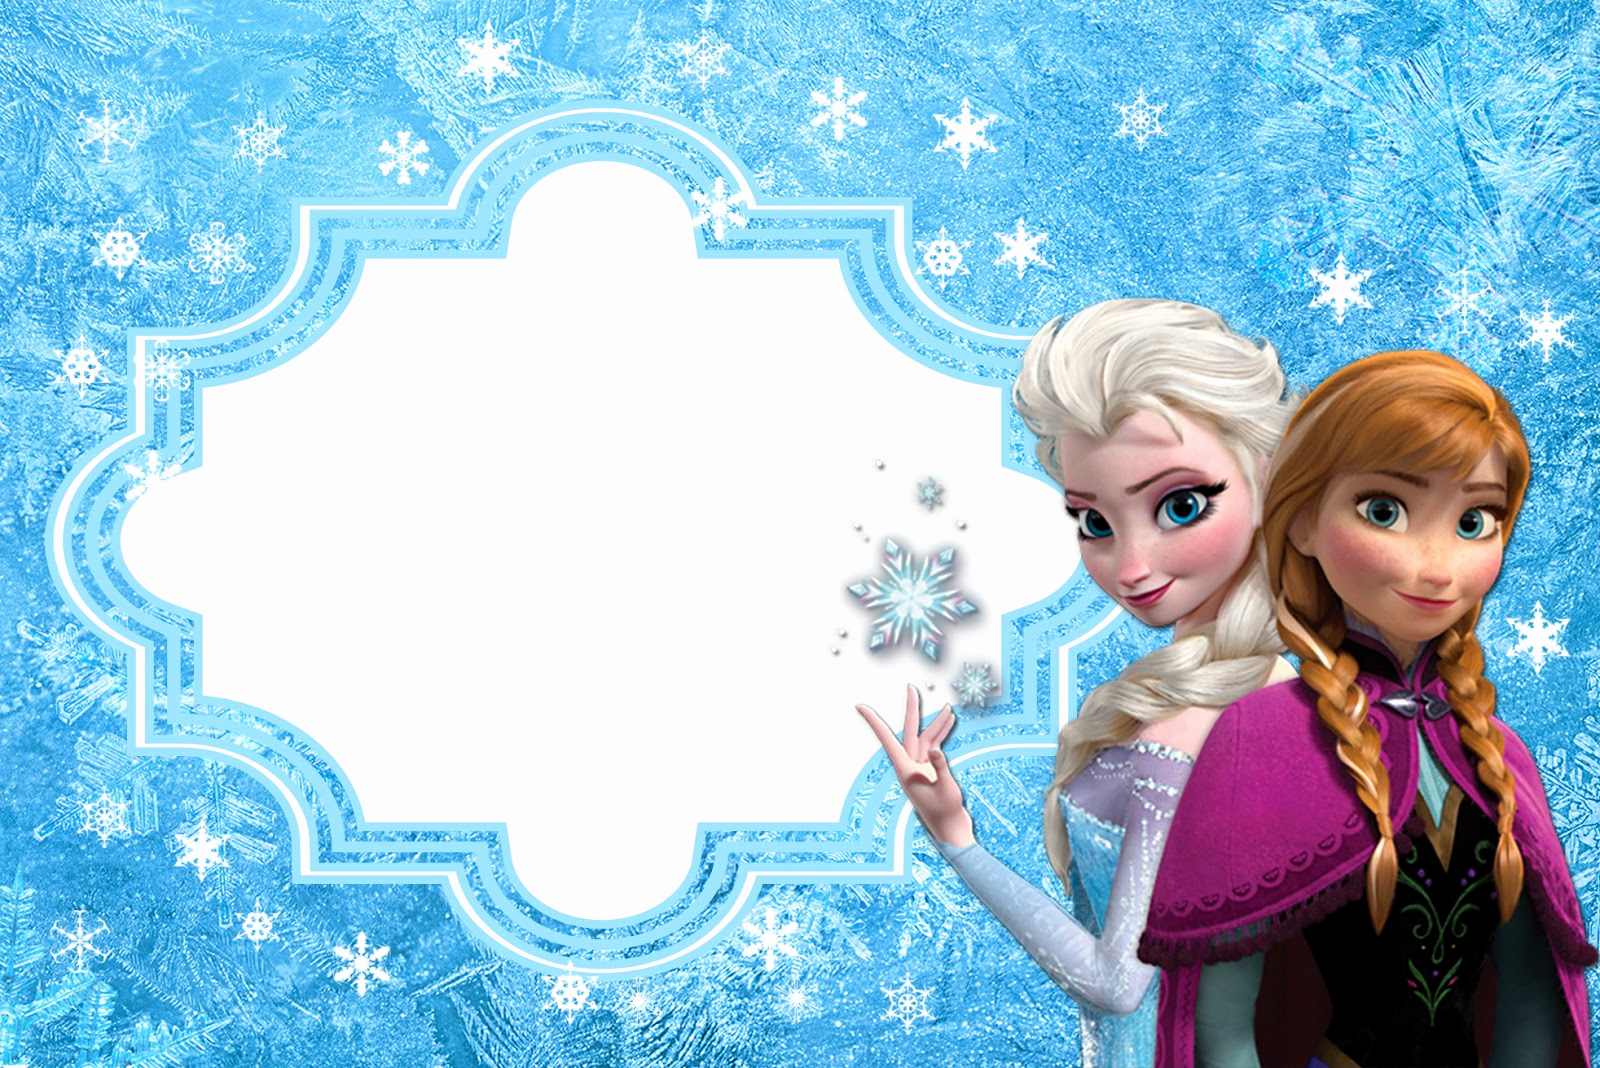 Free Printable Frozen Invitation Templates Awesome Frozen Free Printable Cards or Party Invitations